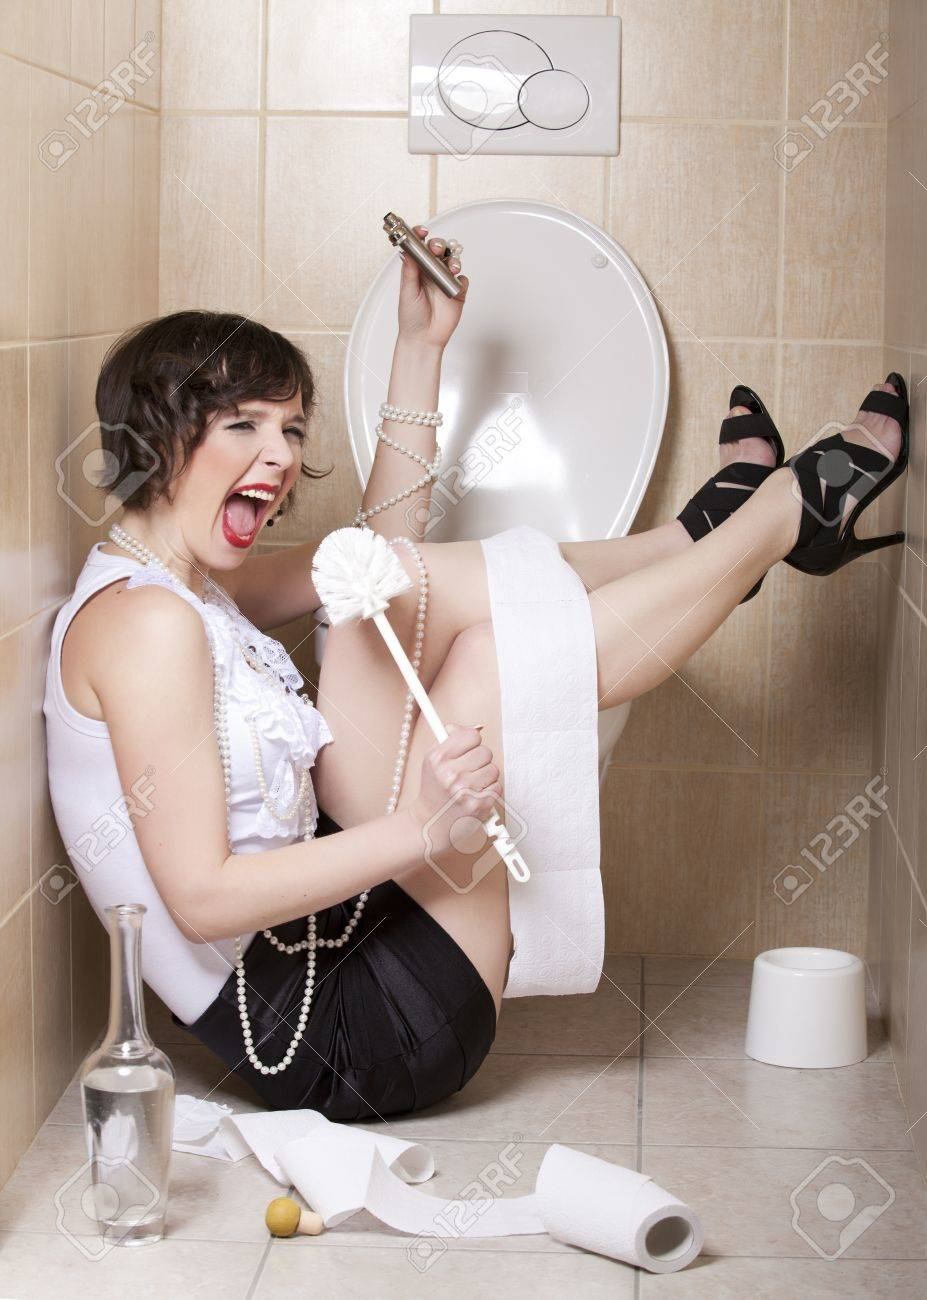 Drunk woman sitting dizzy on the toilet floor Stock Photo - 9166408